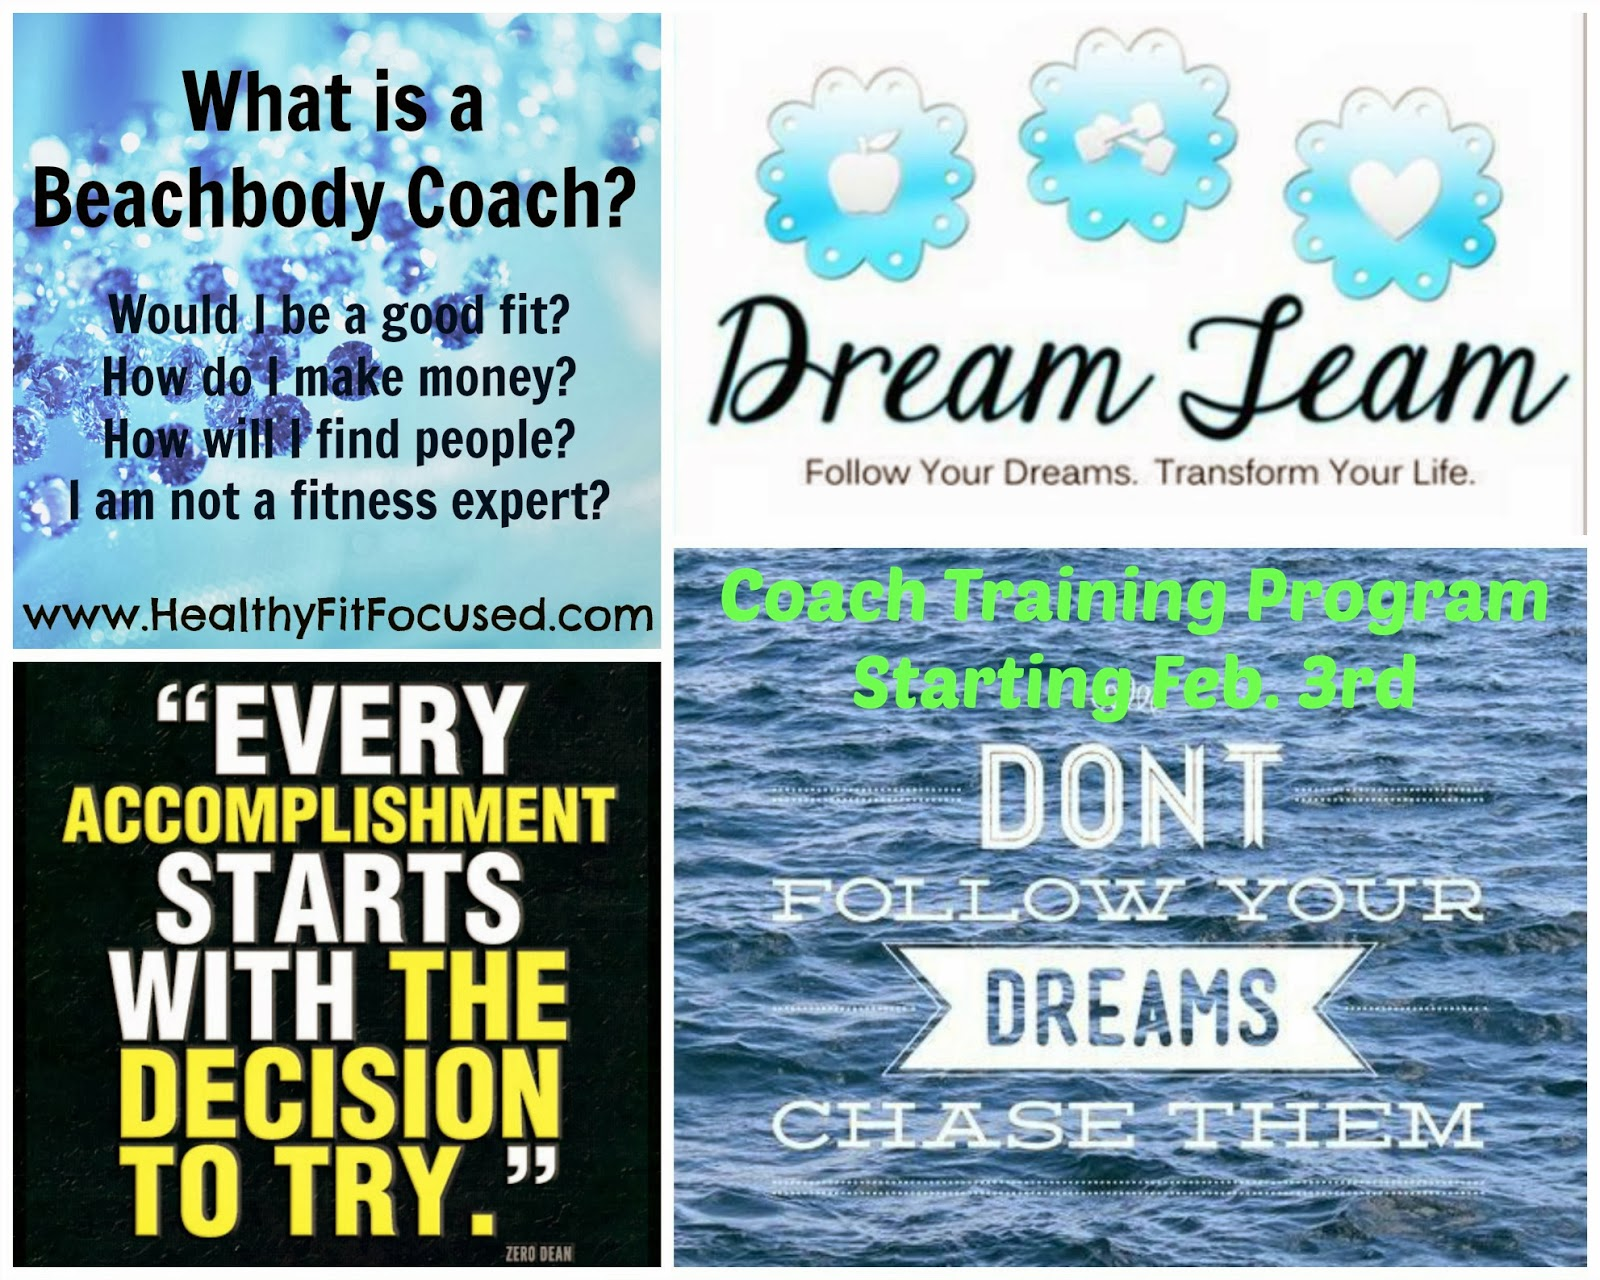 What is a Beachbody Coach, www.HealthyFitFocused.com